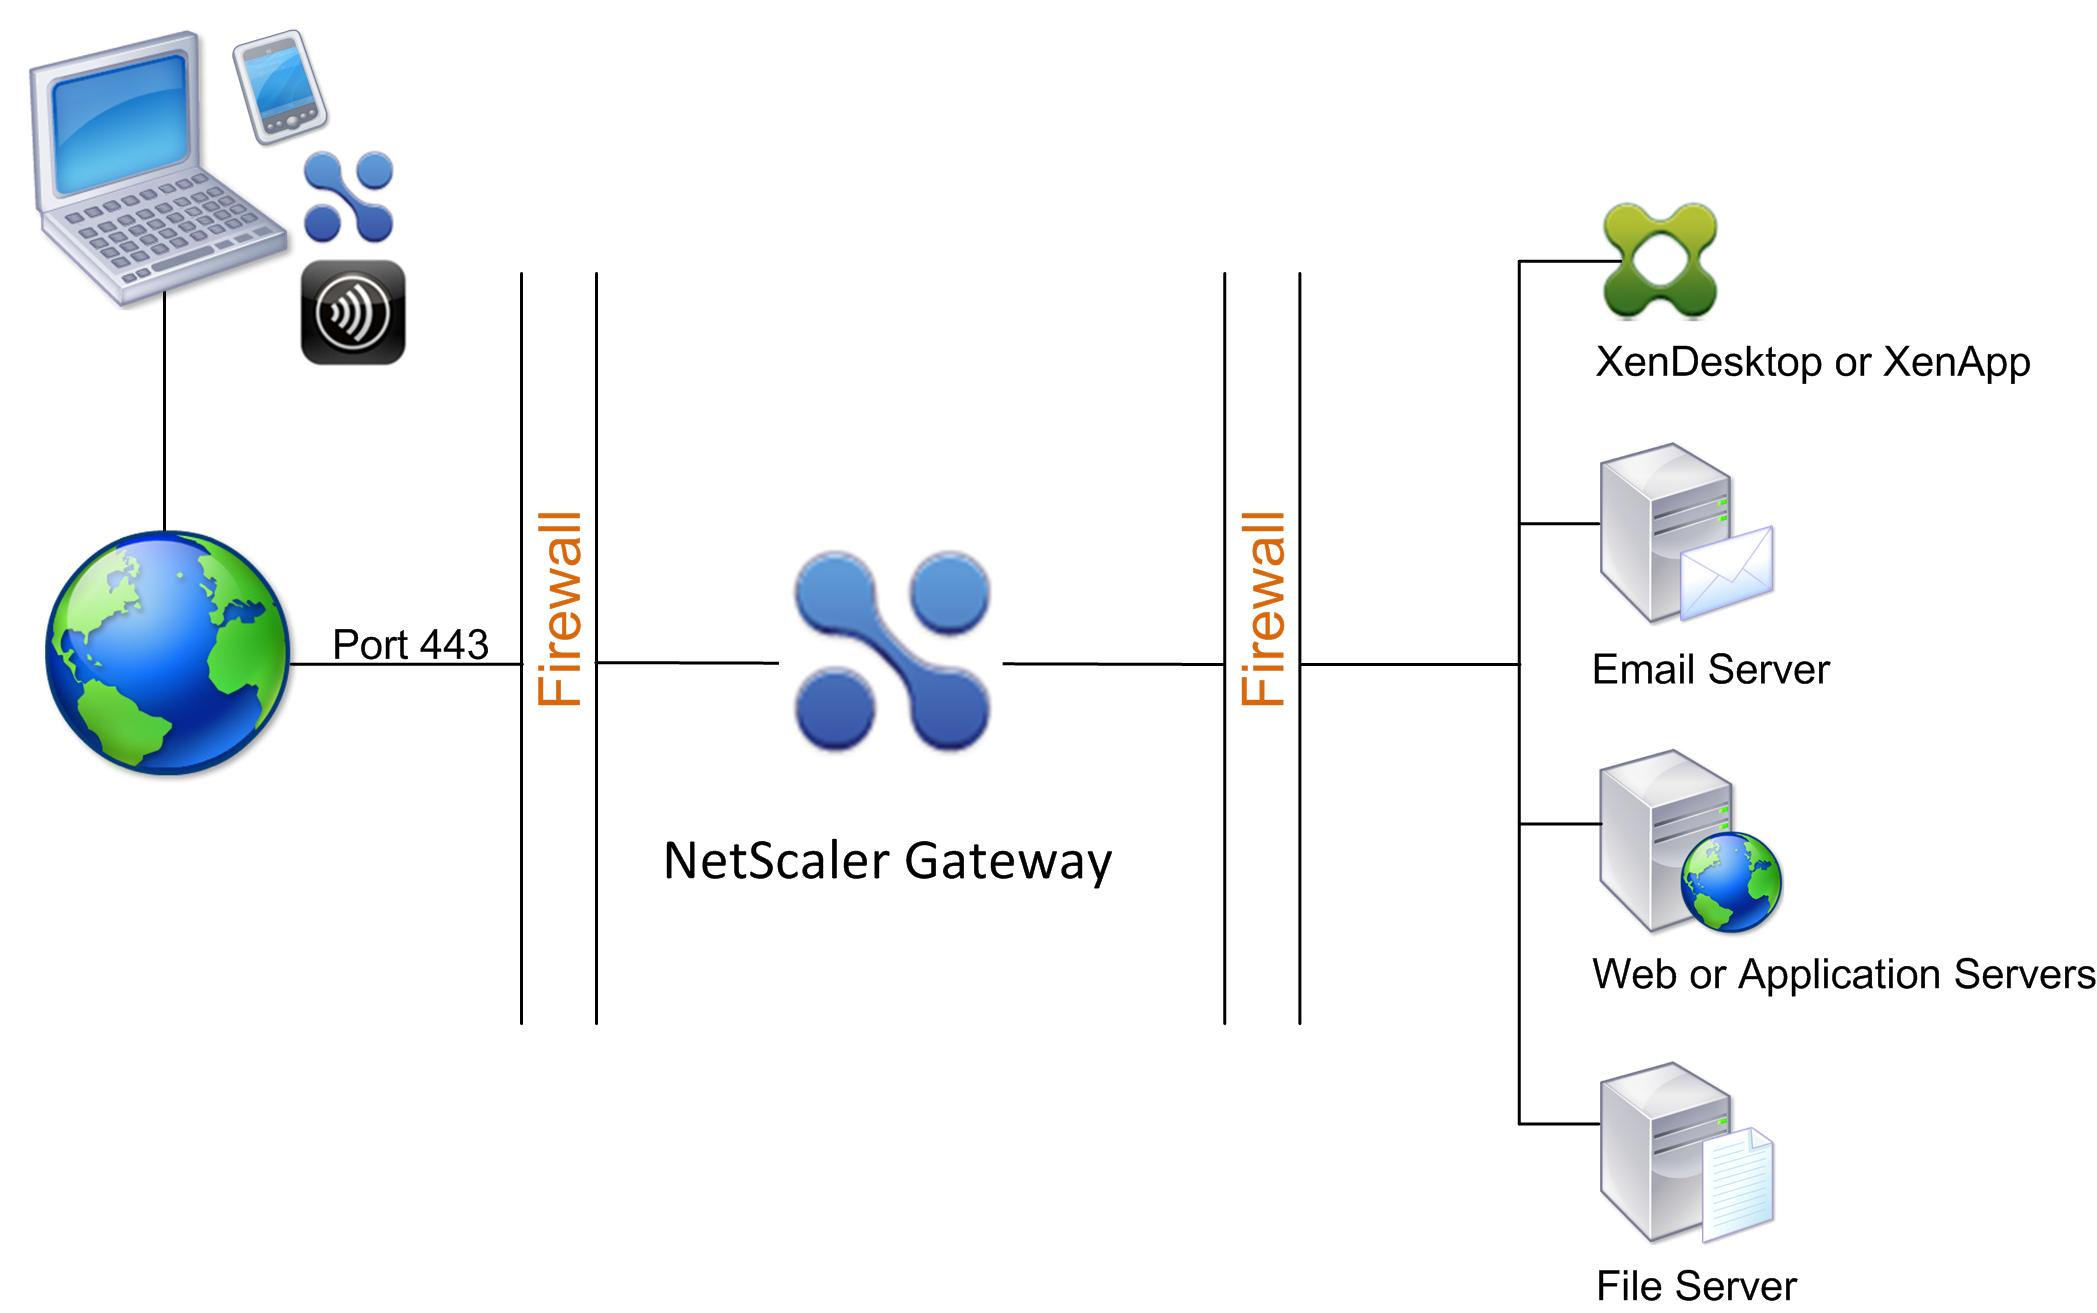 NetScaler Gateway deployed in the DMZ